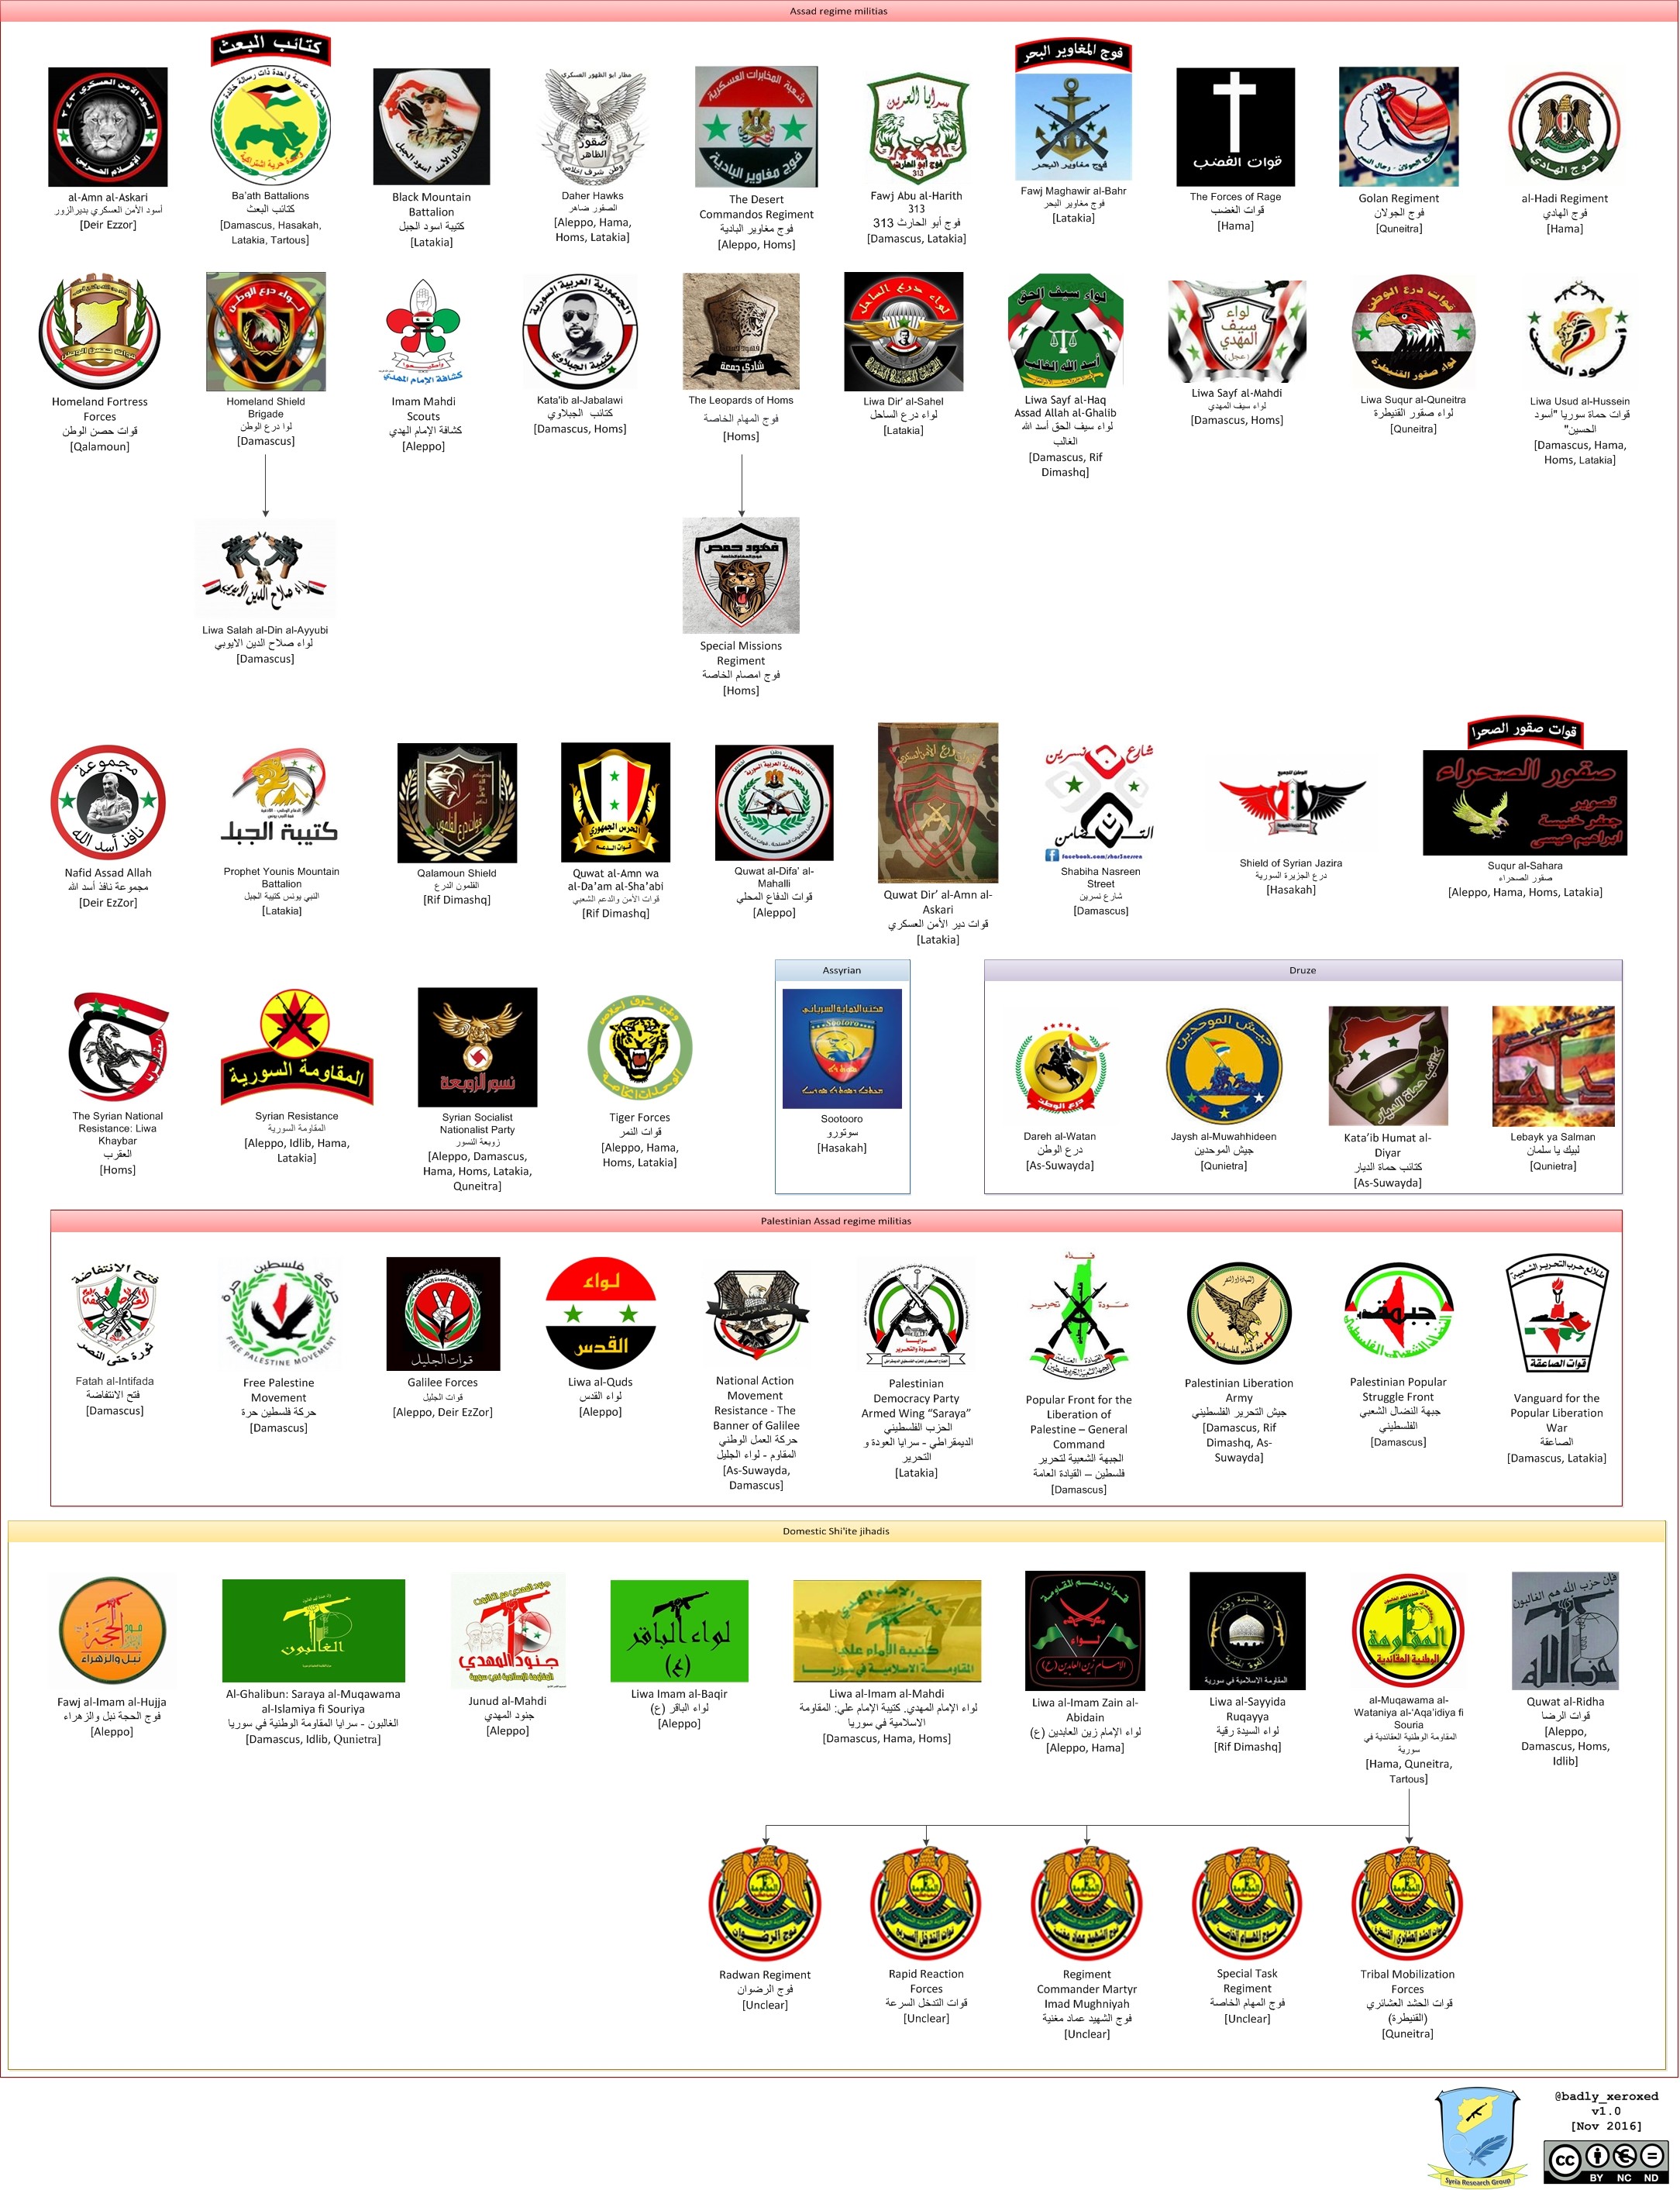 Assad regime militias in the Syrian Civil War